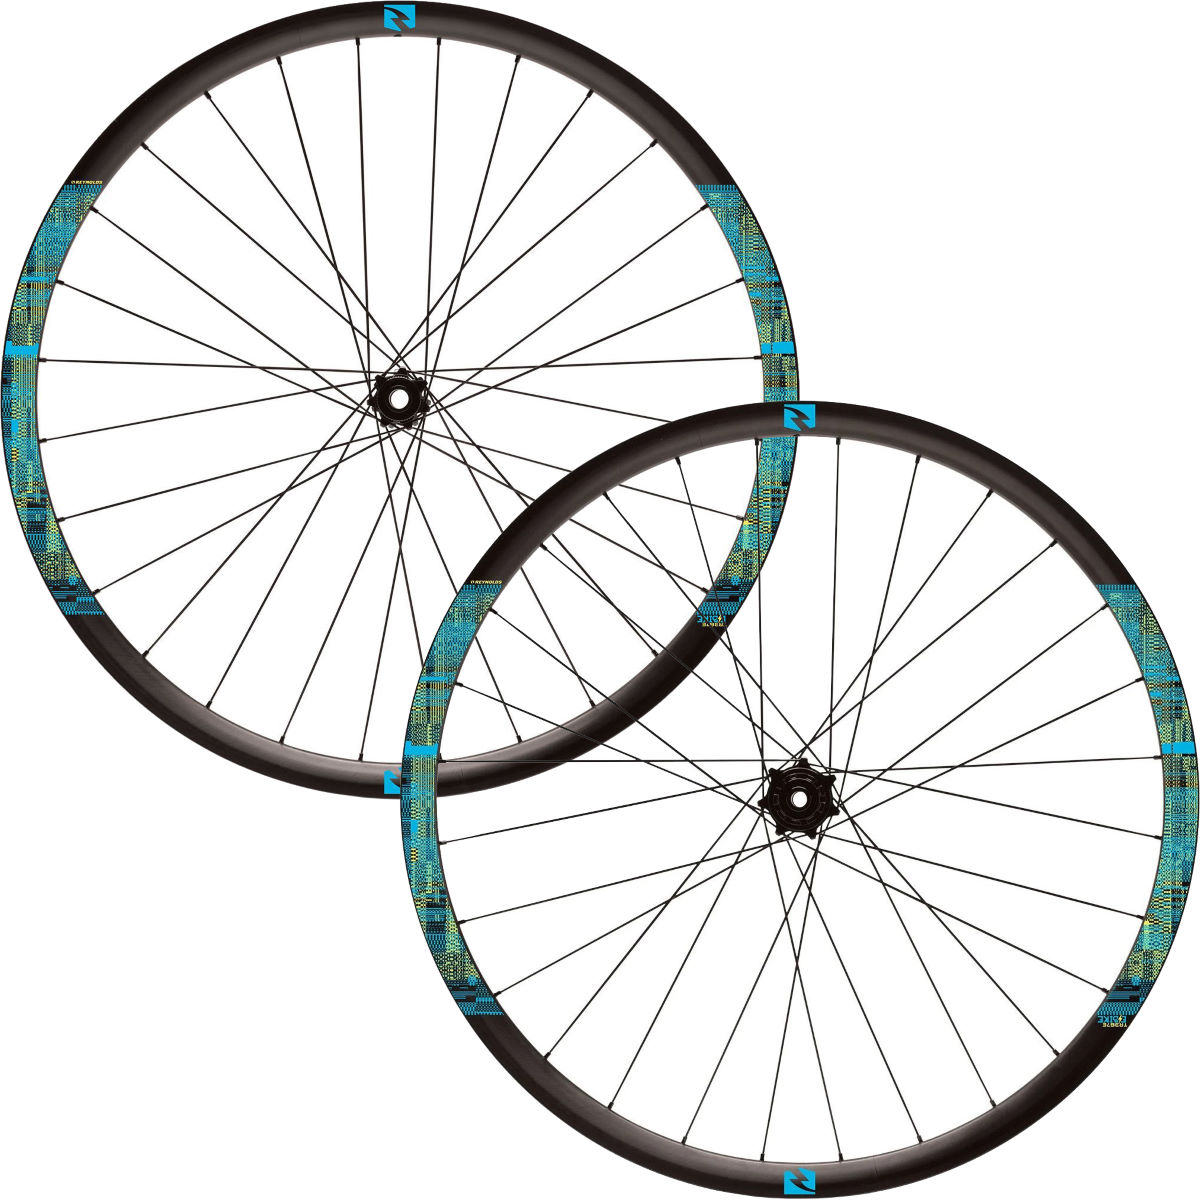 Reynolds Reynolds TRE 367 Carbon MTB Wheelset   Wheel Sets